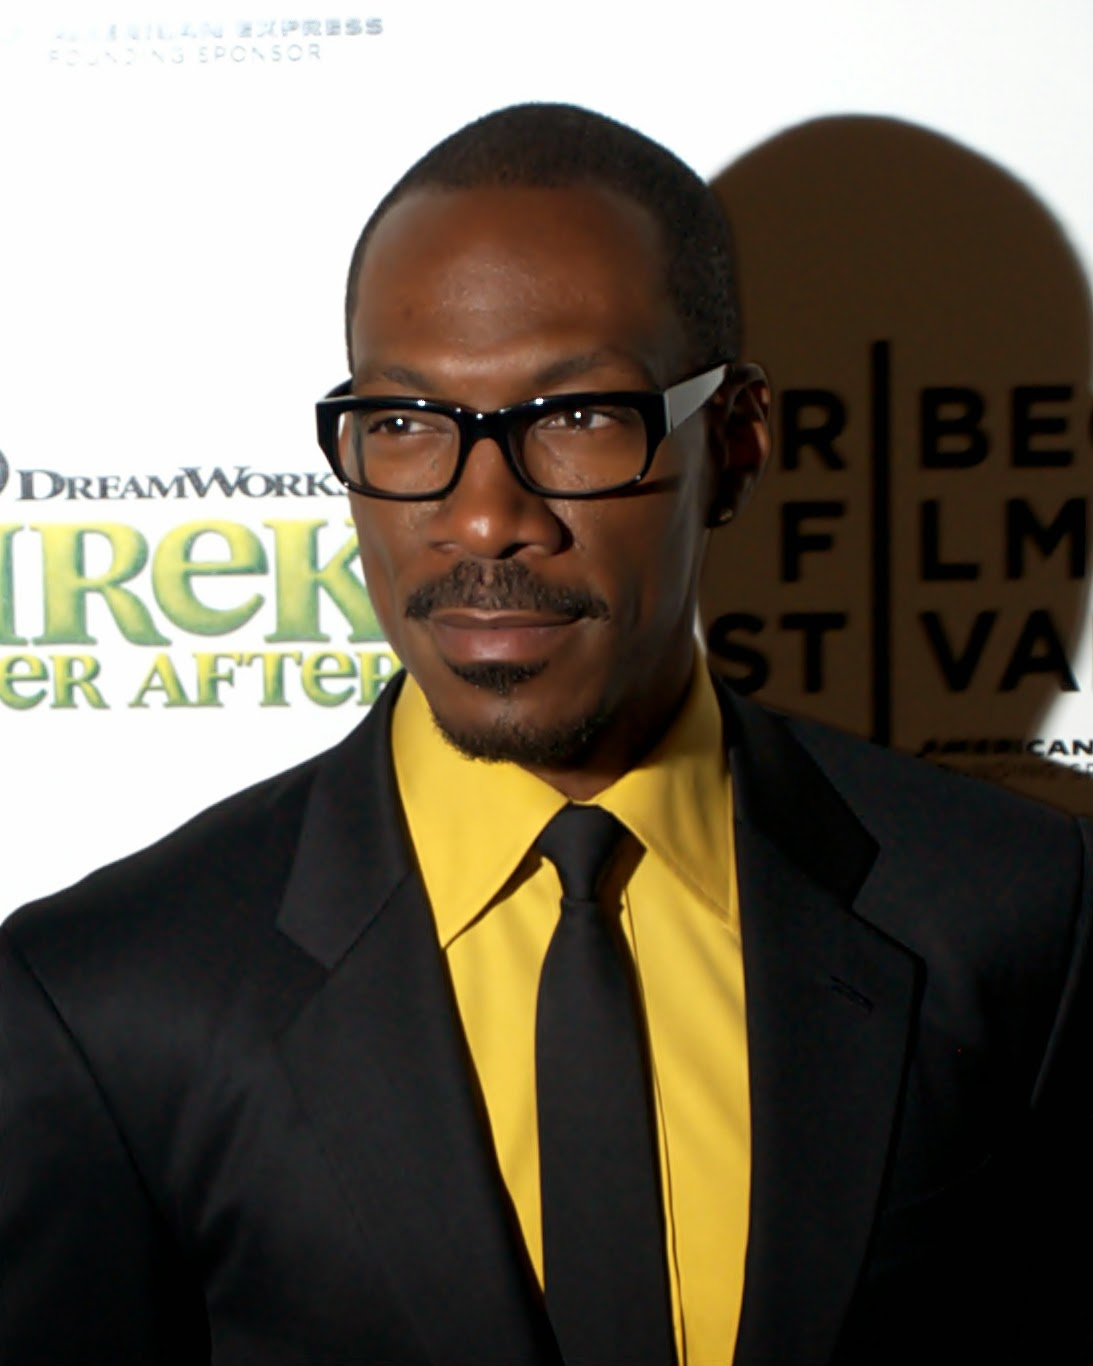 We know that this is Eddie Murphy we just didn't care